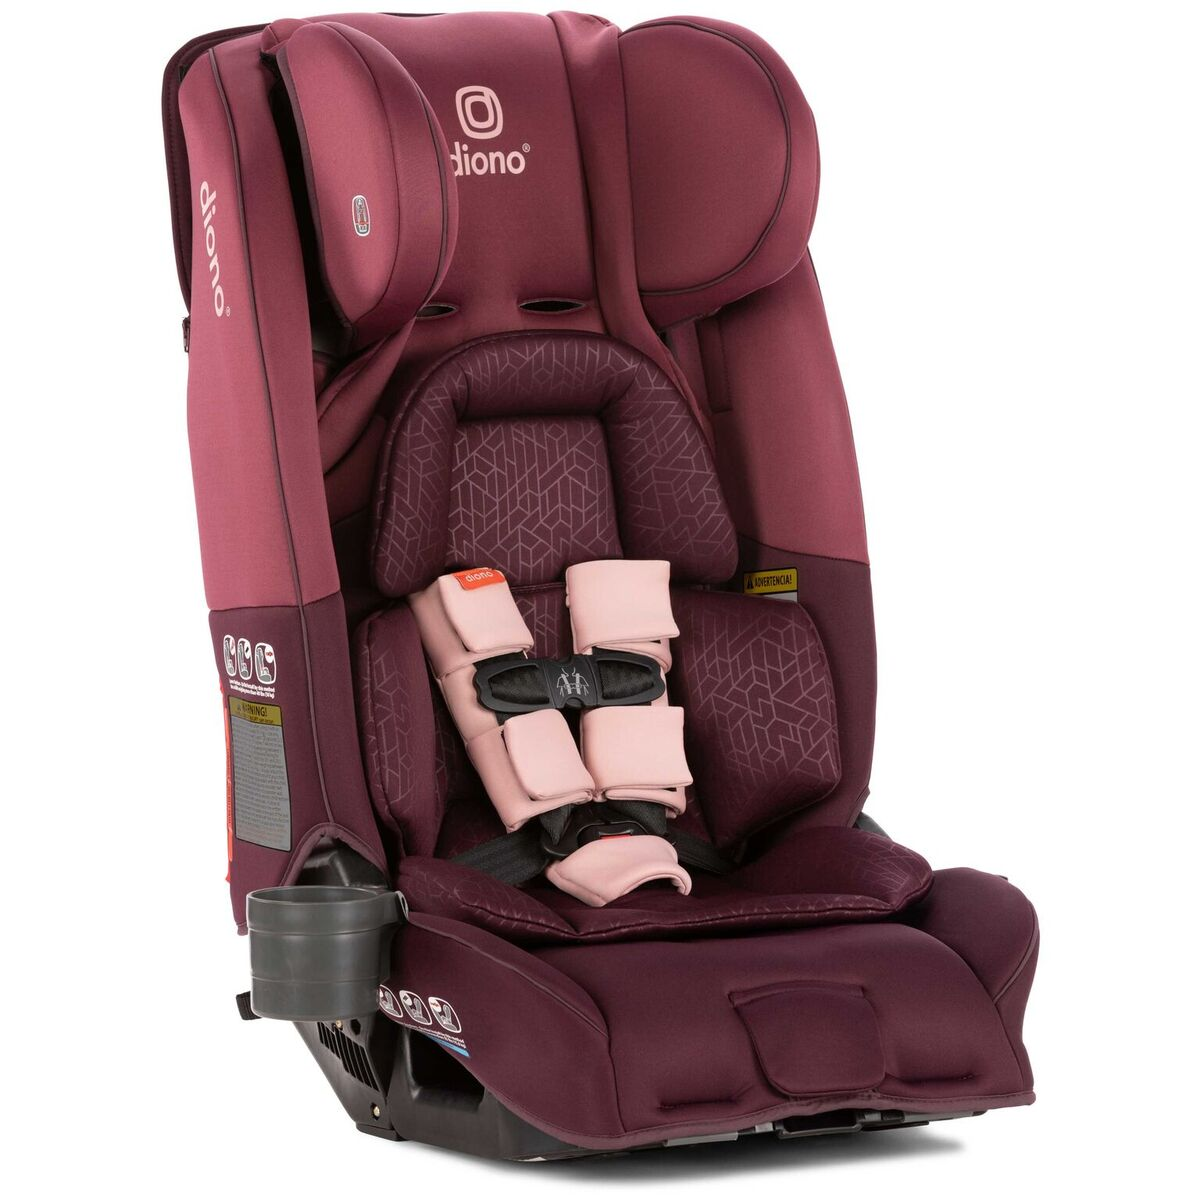 Diono RadianR 3 RXT Convertible Booster Car Seat